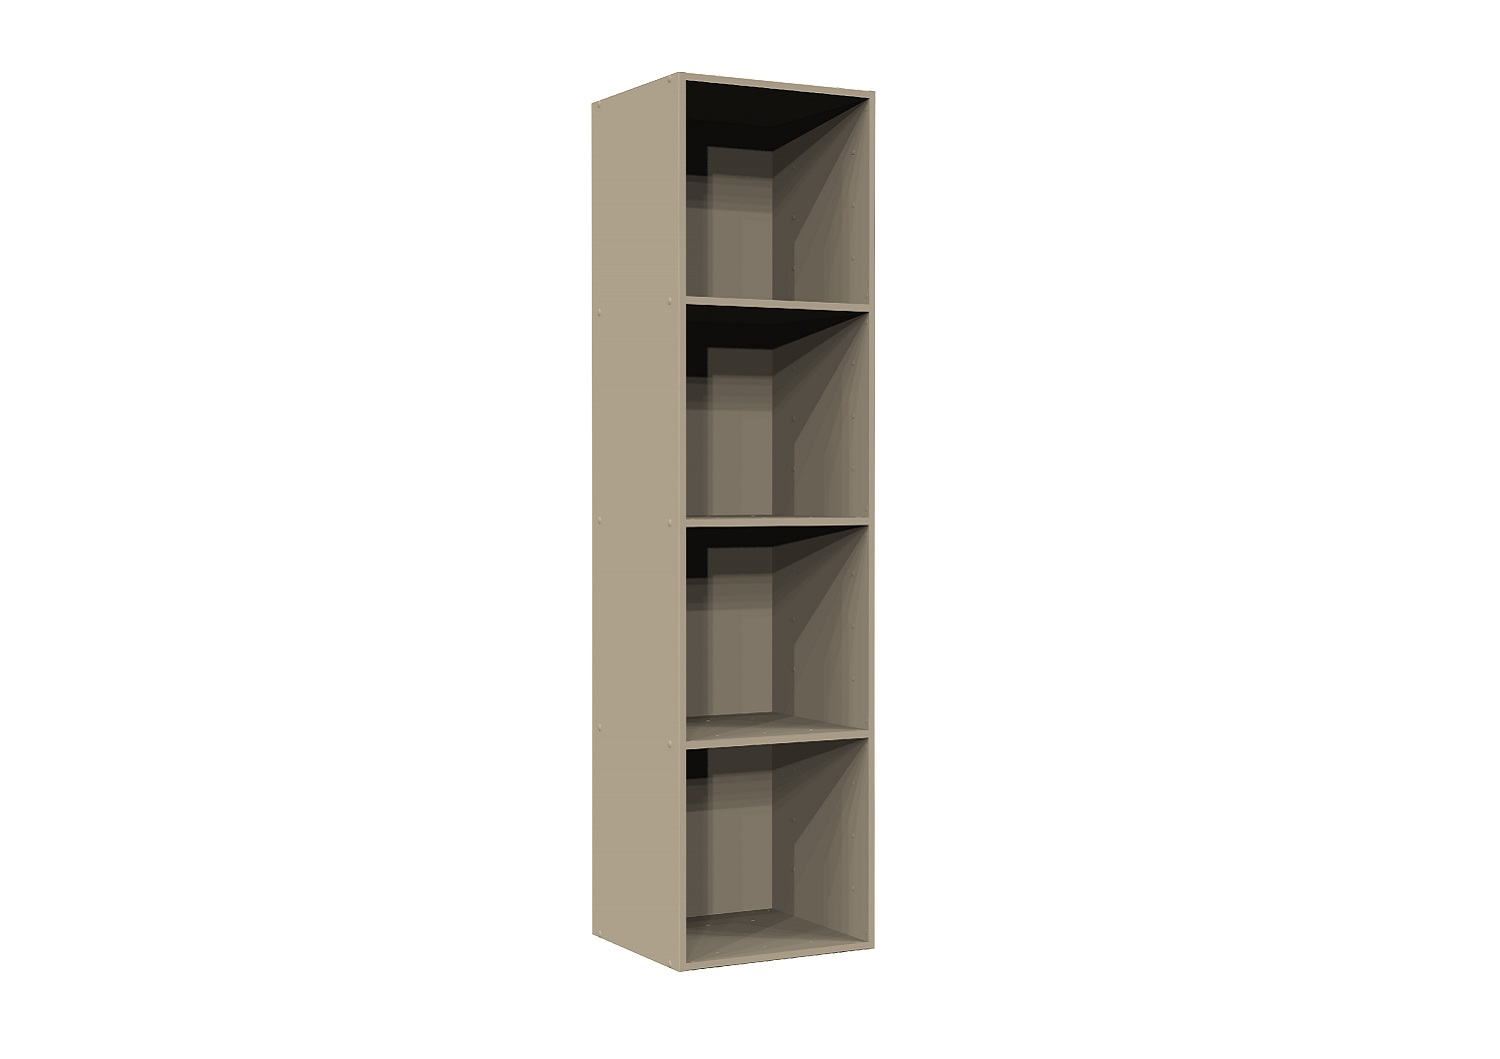 Bilrich Storage Furniture - Multi Kaz 4x1 Cube Taupe